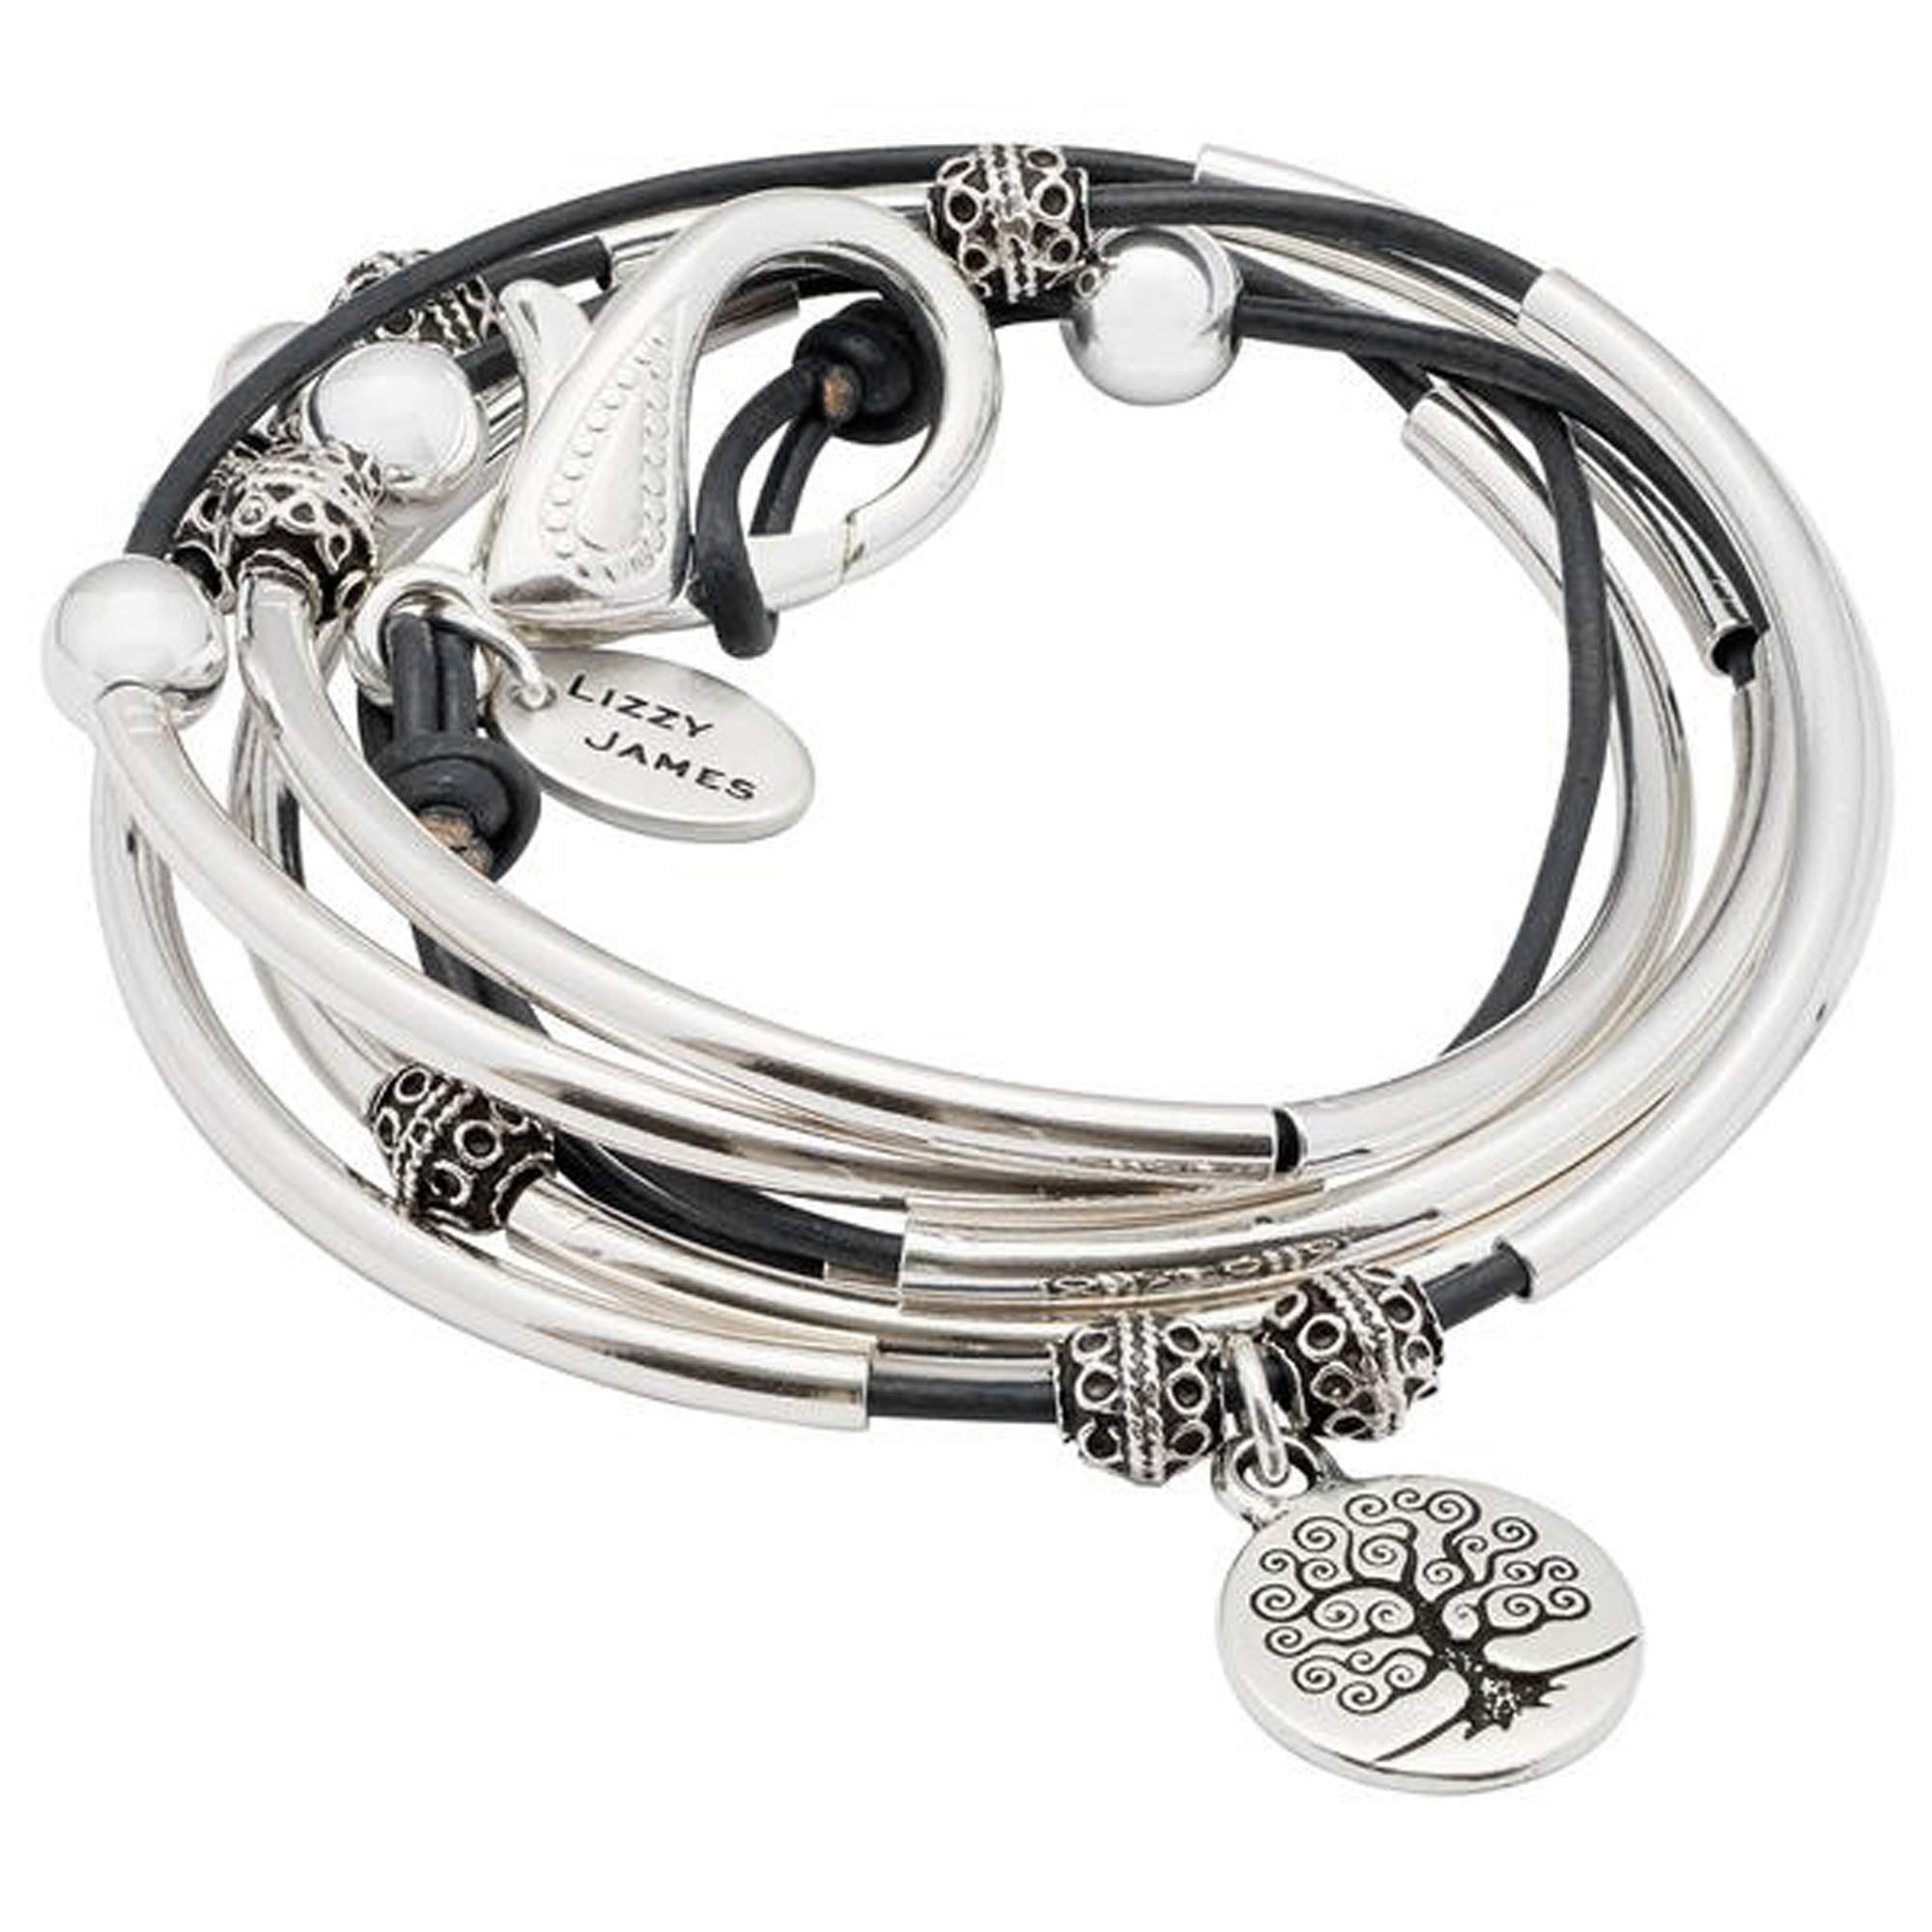 Lizzy James April with Tree of Life Charm Silver Bracelet in Natural Black Leather (XLarge) by Lizzy James